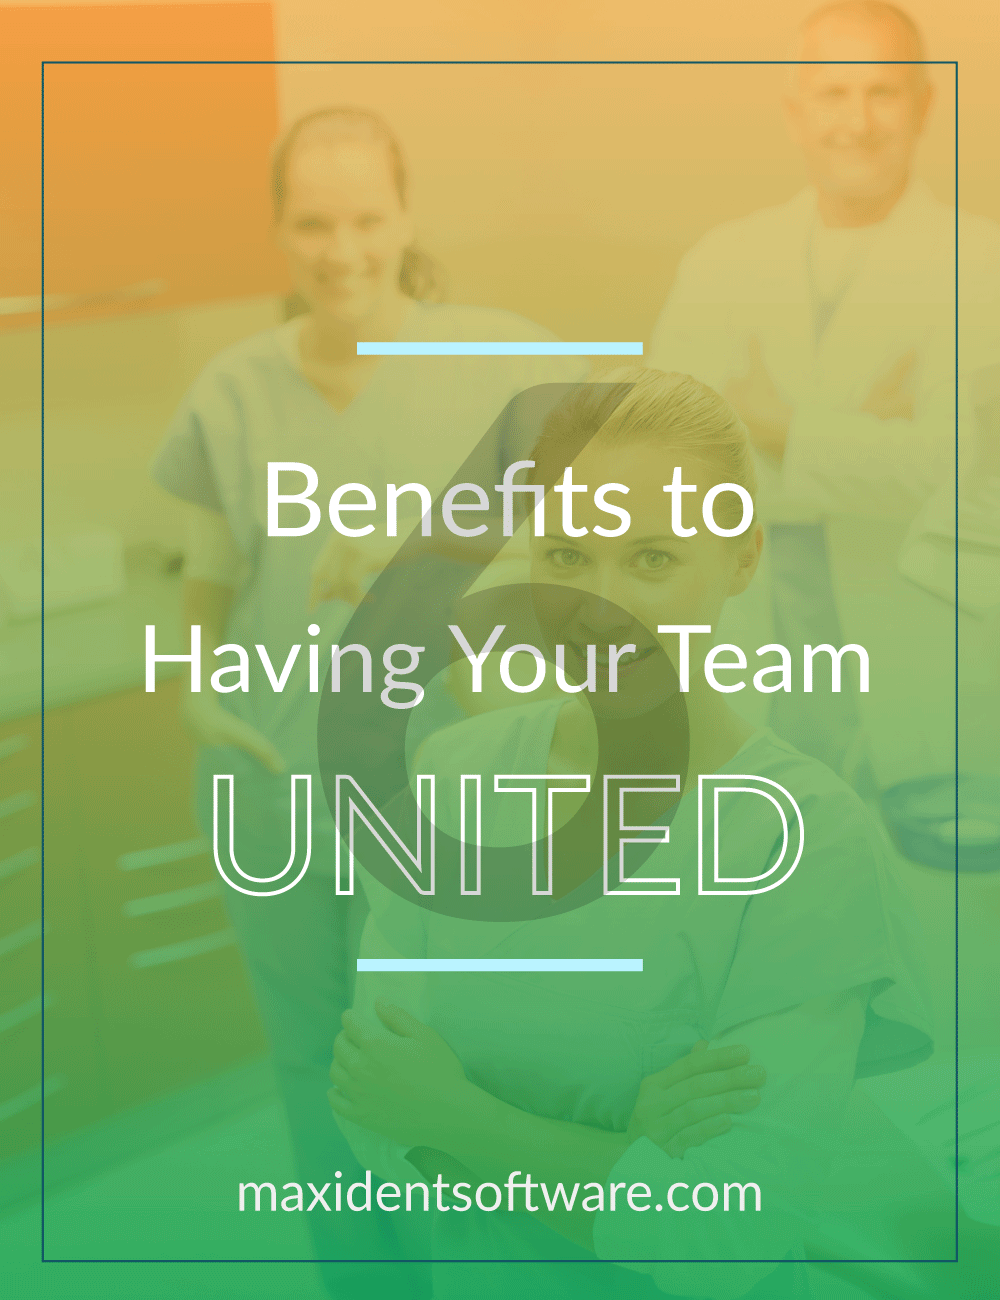 6 Benefits to Having Your Team United